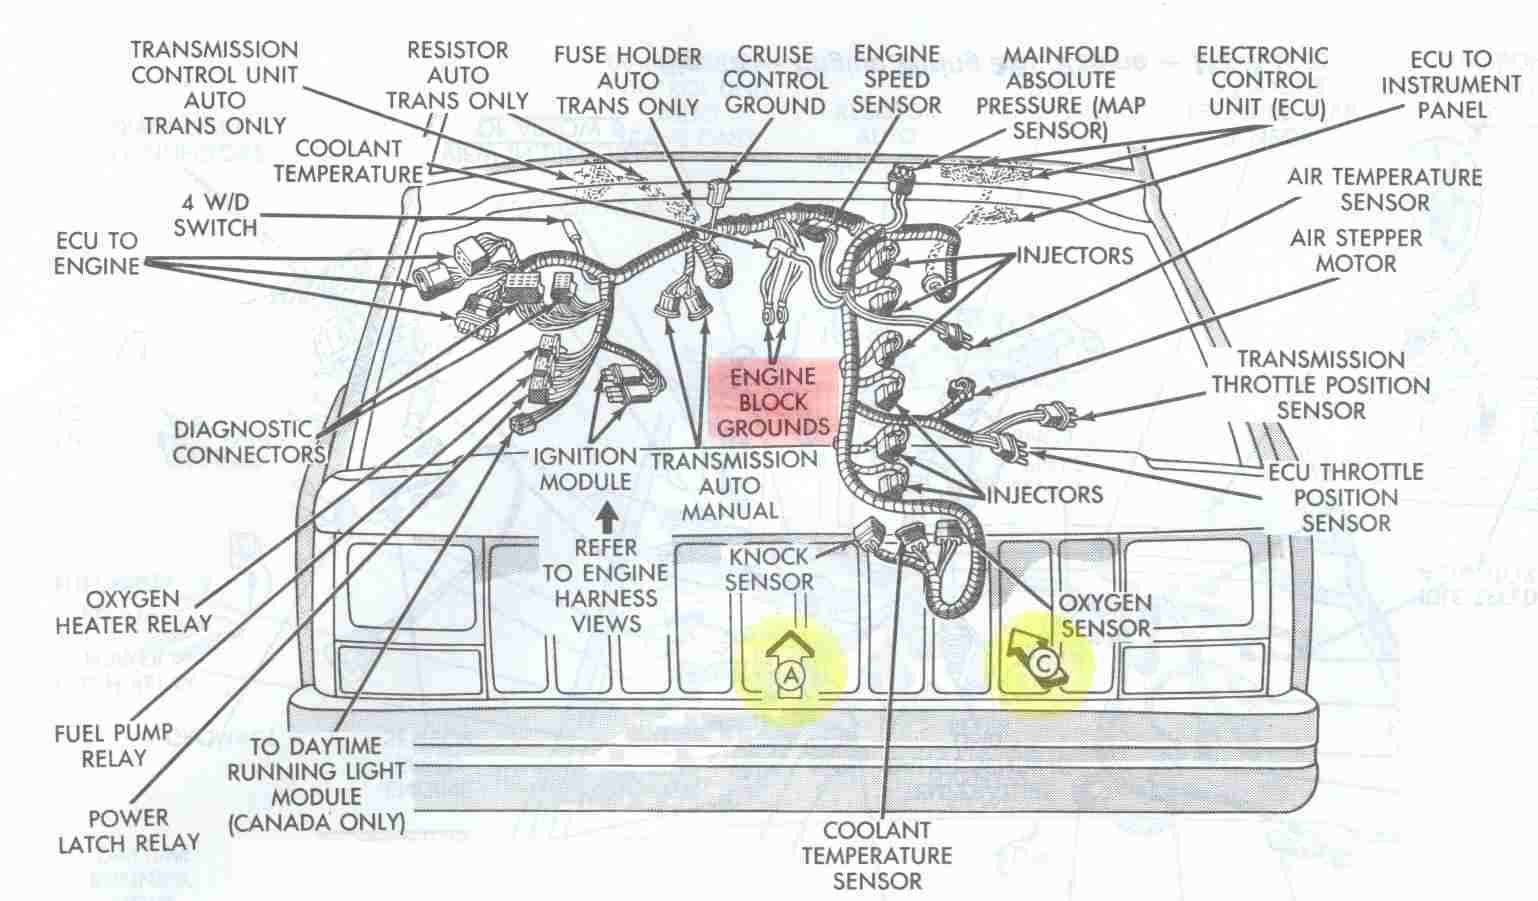 ab0134a7d9e021431187af597eb4aeca engine bay schematic showing major electrical ground points for wiring harness jeep grand cherokee 2000 at bayanpartner.co